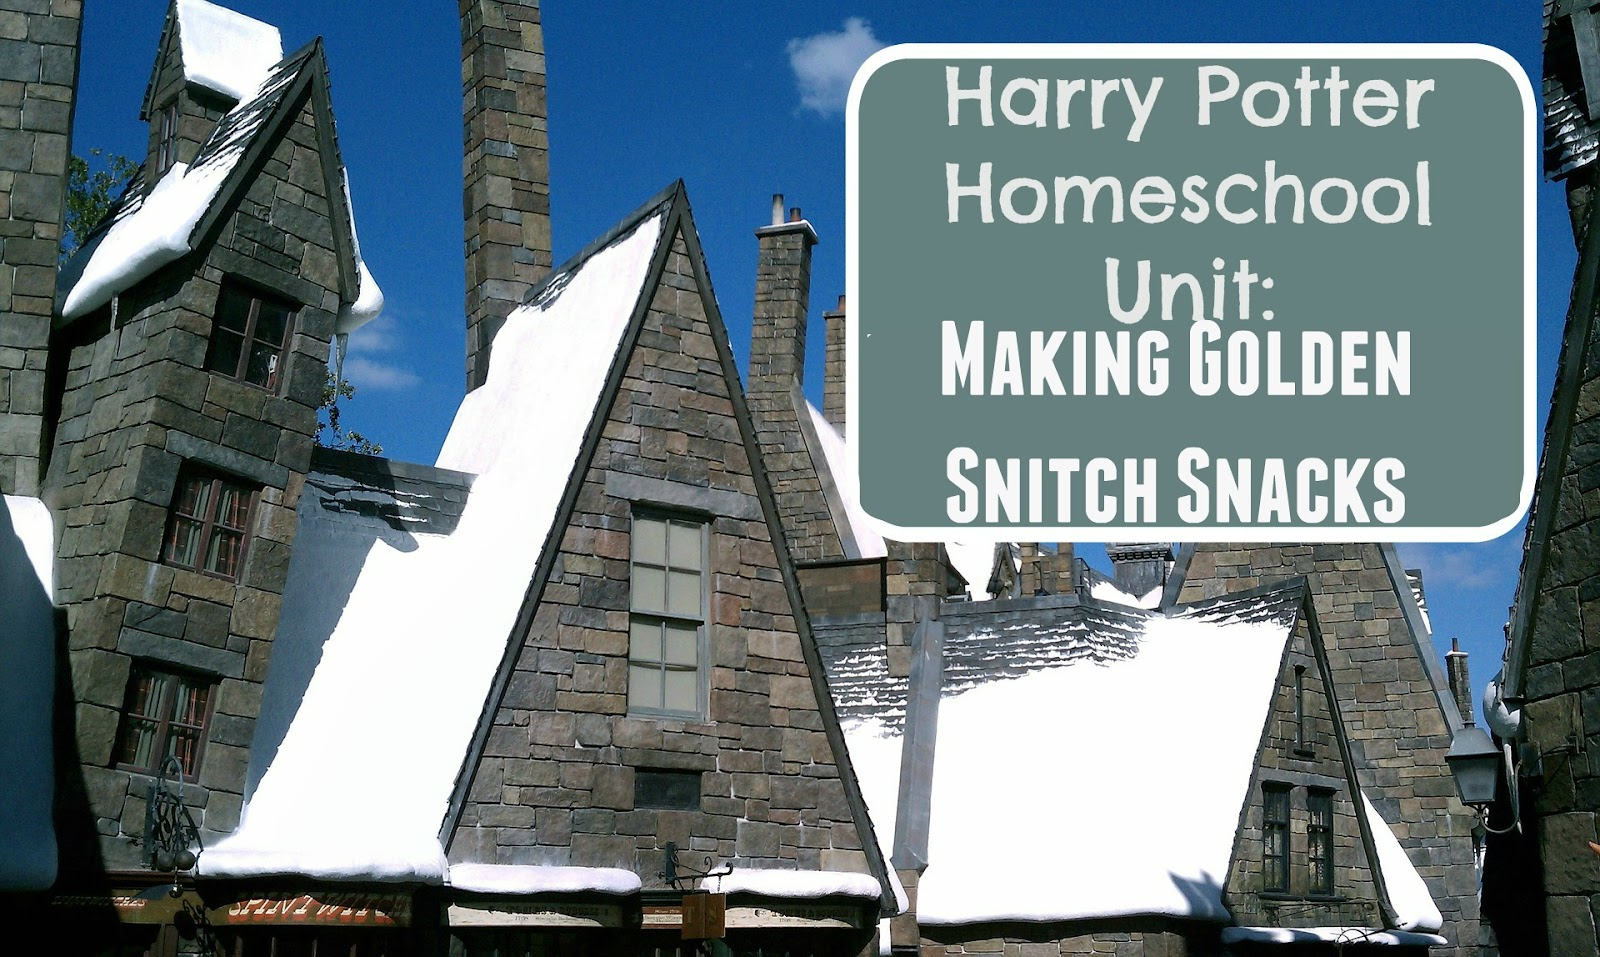 Our Unschooling Journey Through Life A Bit Of Magic A Harry Potter Homeschooling Unit